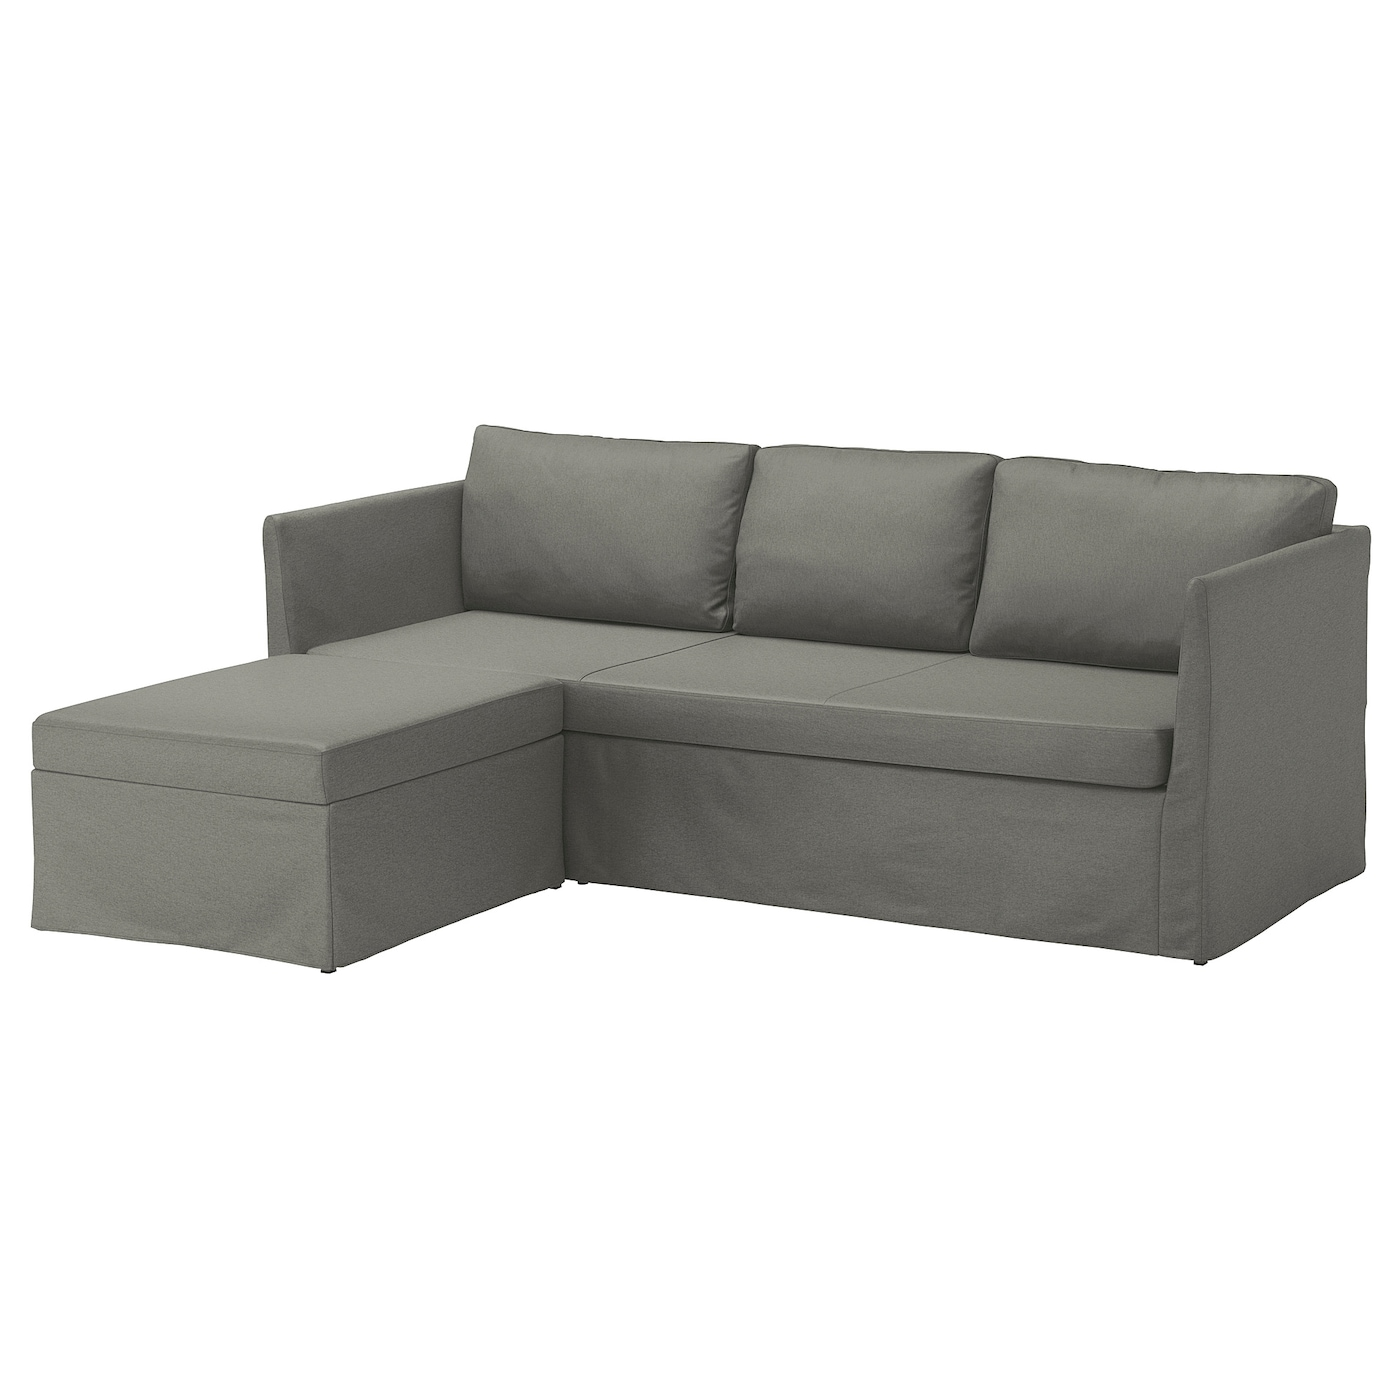 Ikea BrÅthult Corner Sofa Bed You Sit Comfortably Thanks To The Resilient Foam And Springy